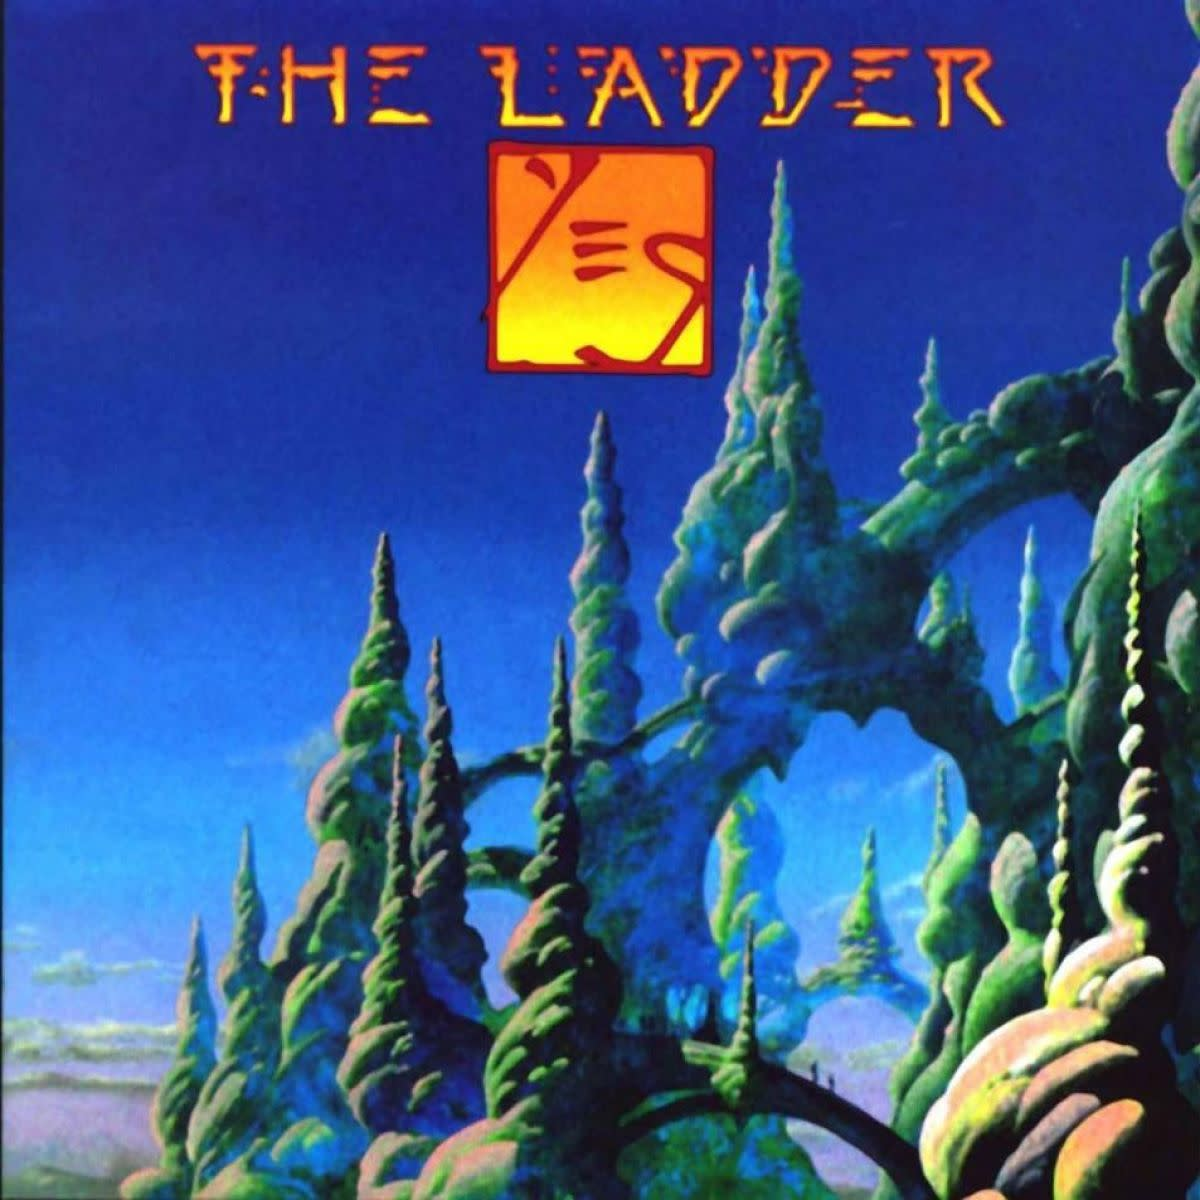 "Yes ""The Ladder"" Eagle Records EDG12088 2-12"" LP Vinyl Record Set, UK Pressing (1999) Album Cover Art & Design by Roger Dean"